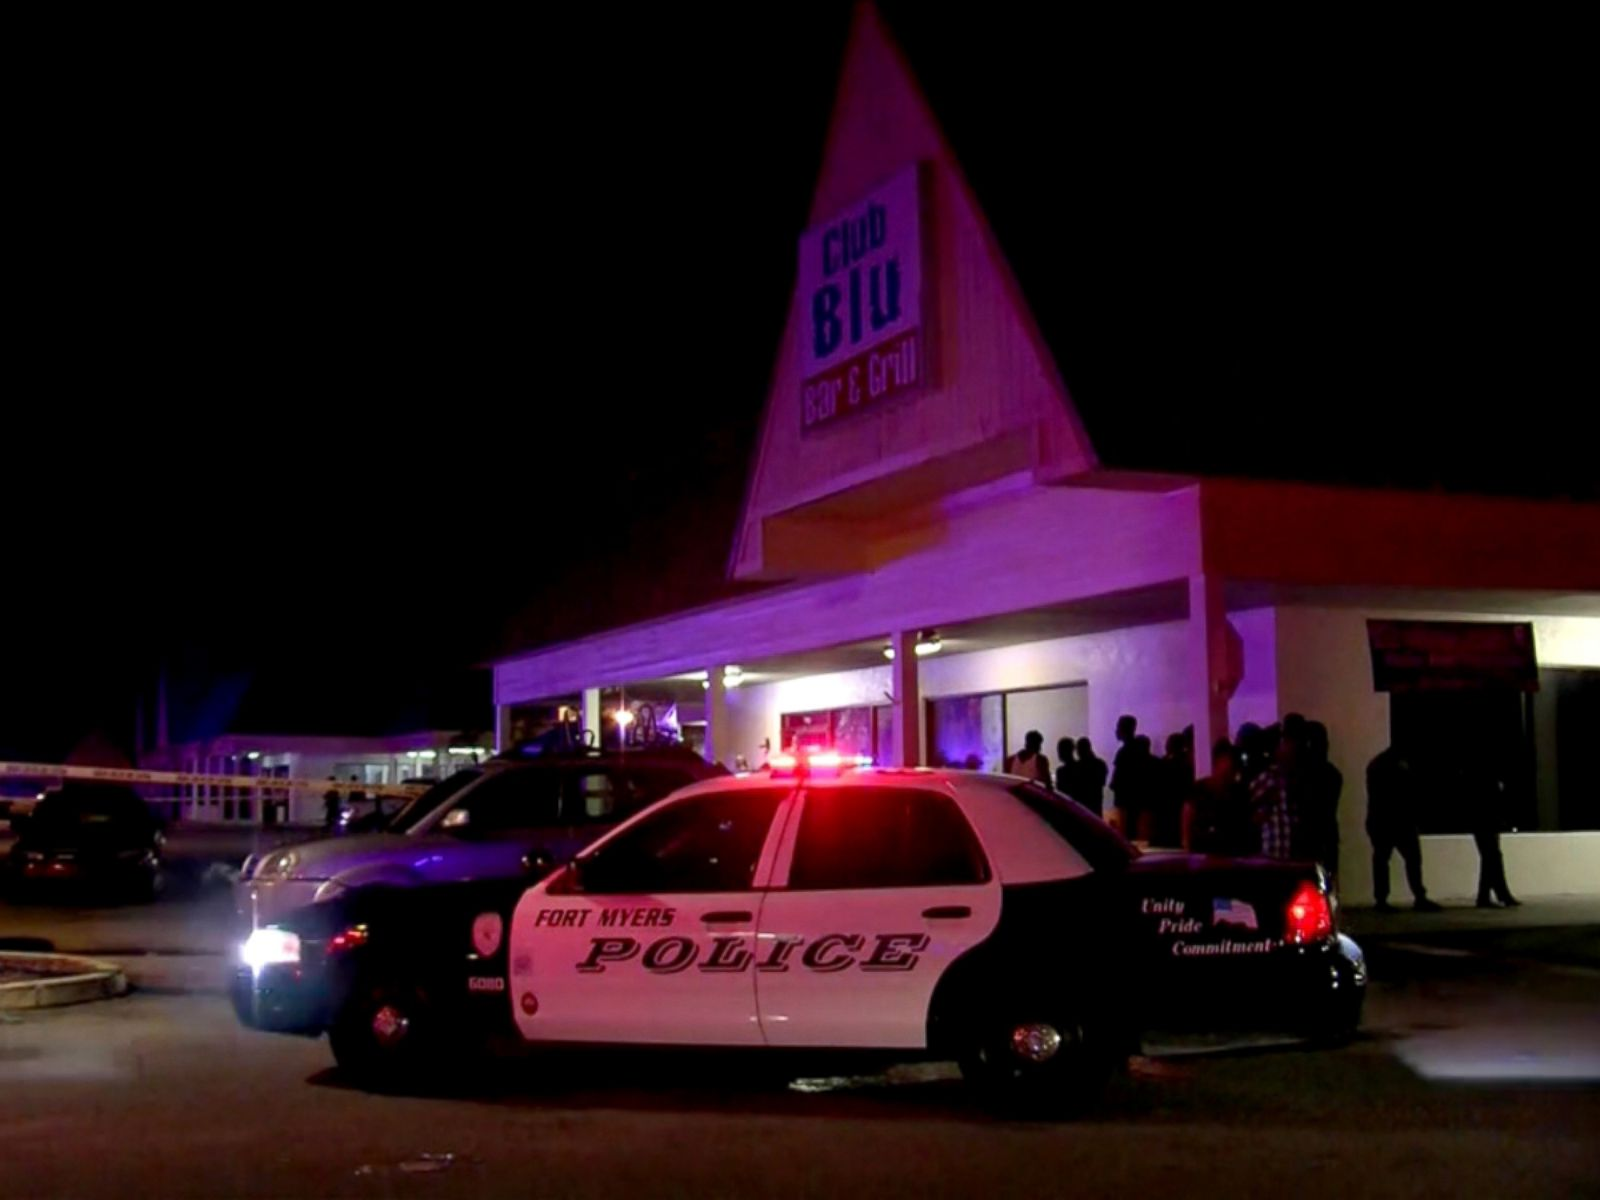 PHOTO: Two people were killed and more than a dozen were injured after a person opened fire during an event geared toward teenagers at Club Blu in Fort Myers, Florida.